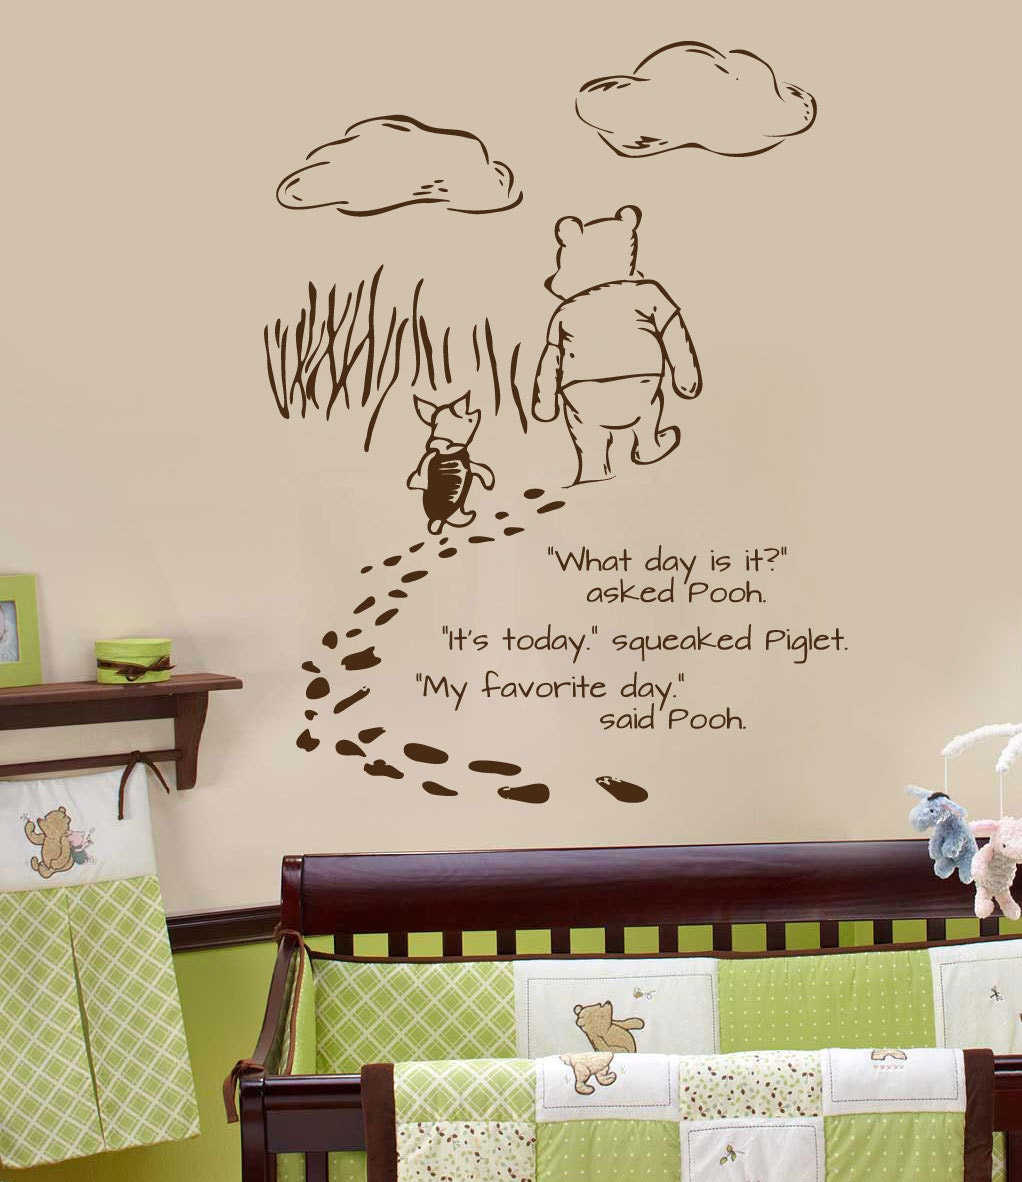 Classic pooh wall decal foot prints by wildgreenrose on etsy for Classic pooh wall mural